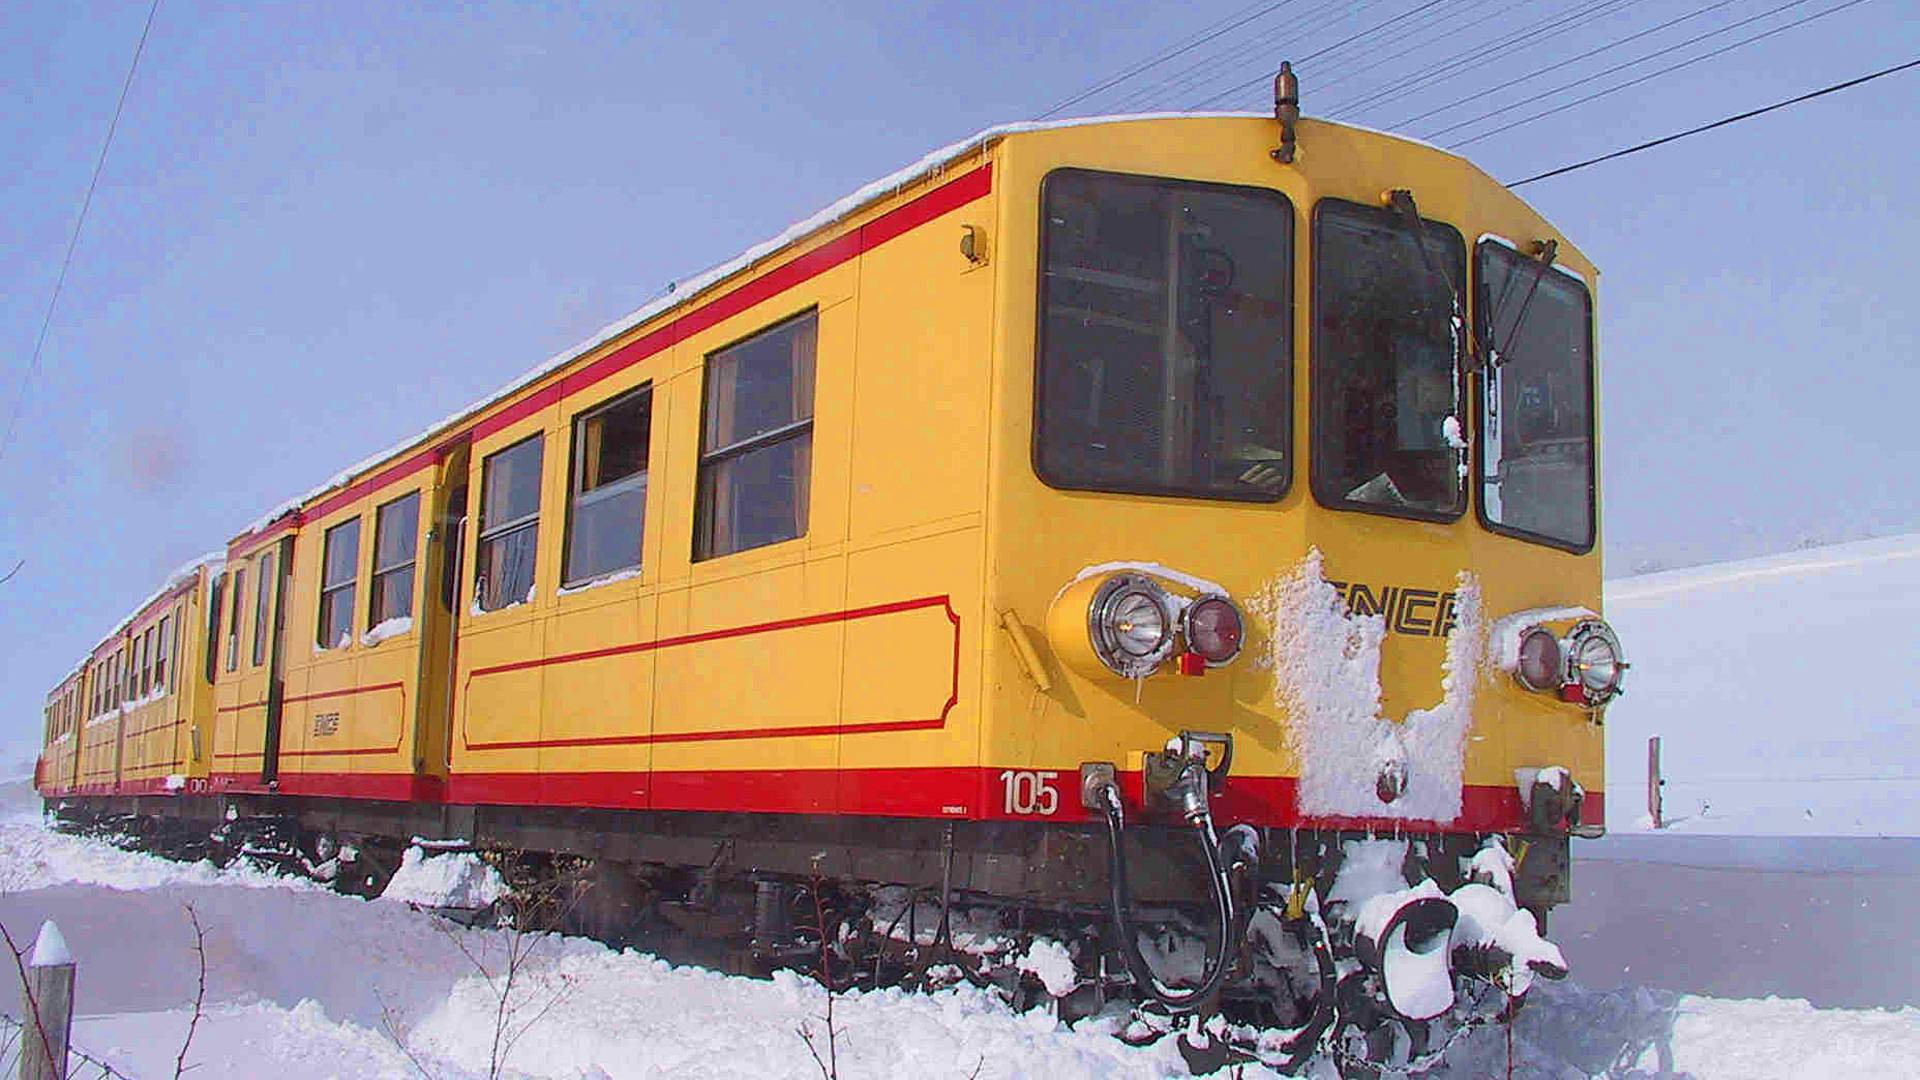 Yellow Train in Winter - Ria Sirach Apartments, Prades